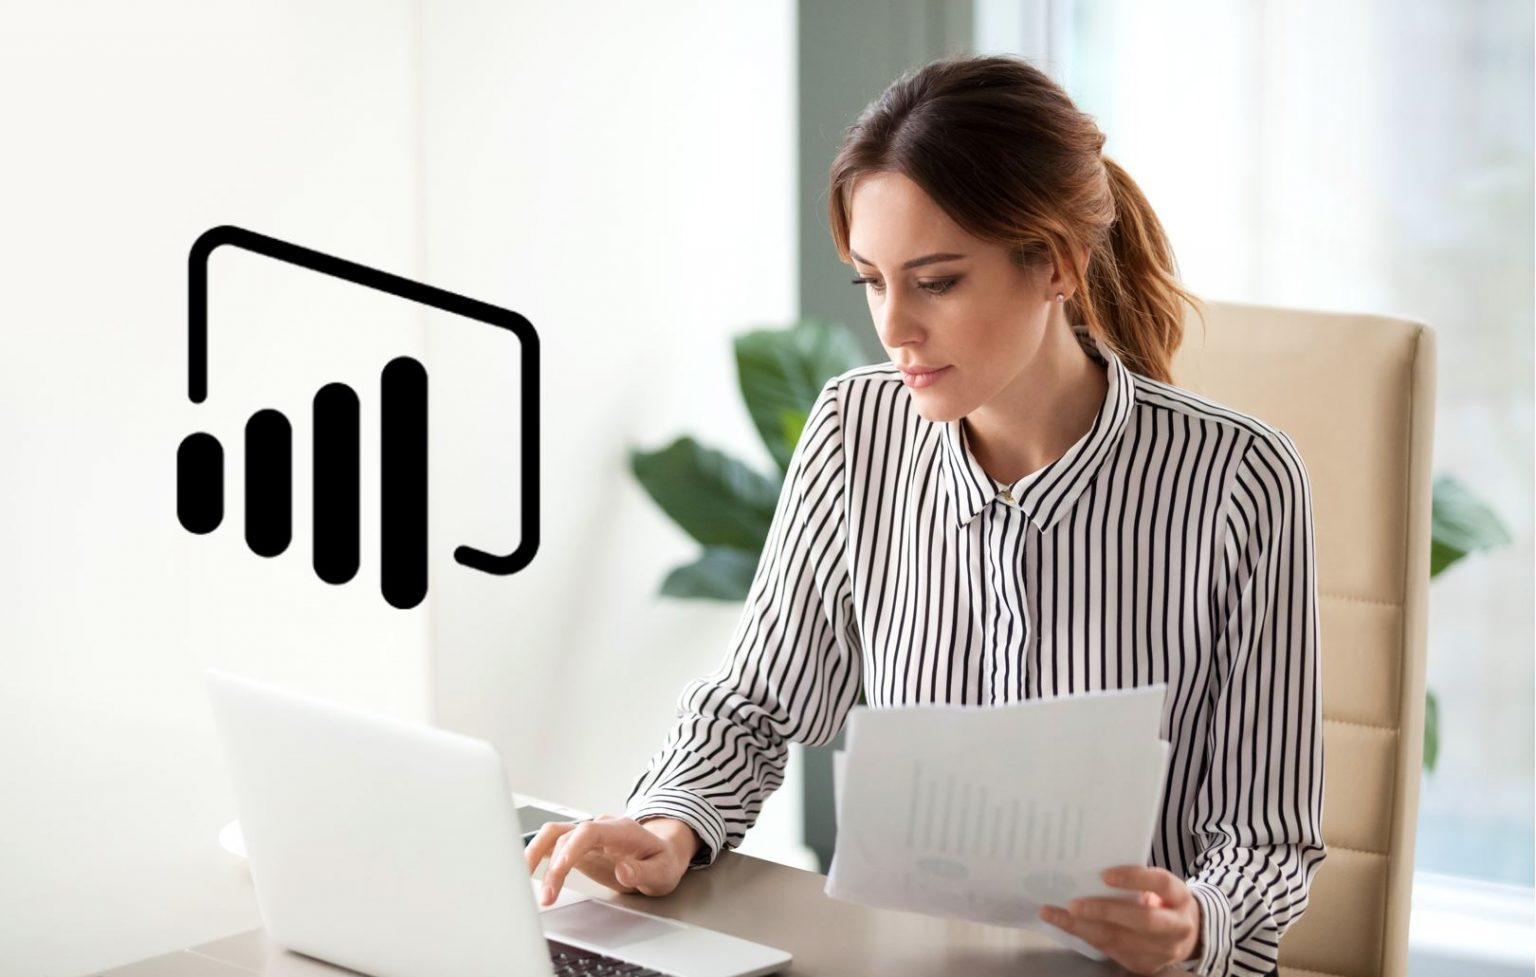 business woman works on laptop with power BI logo